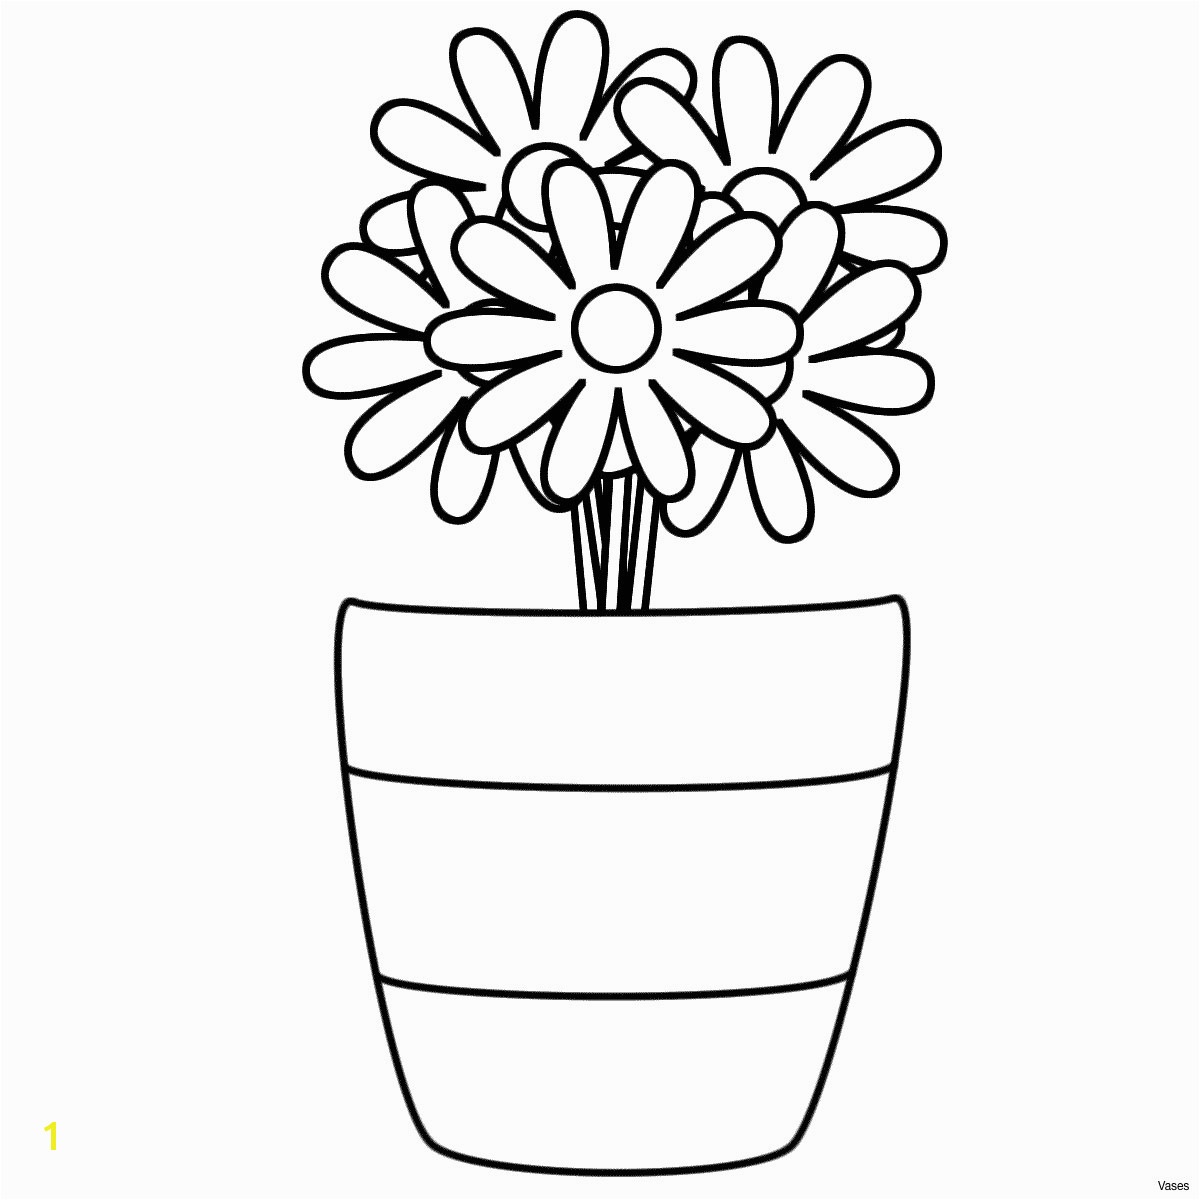 Flower Coloring Sheets Luxury graphy Cool Vases Flower Vase Coloring Page Pages Flowers In A top